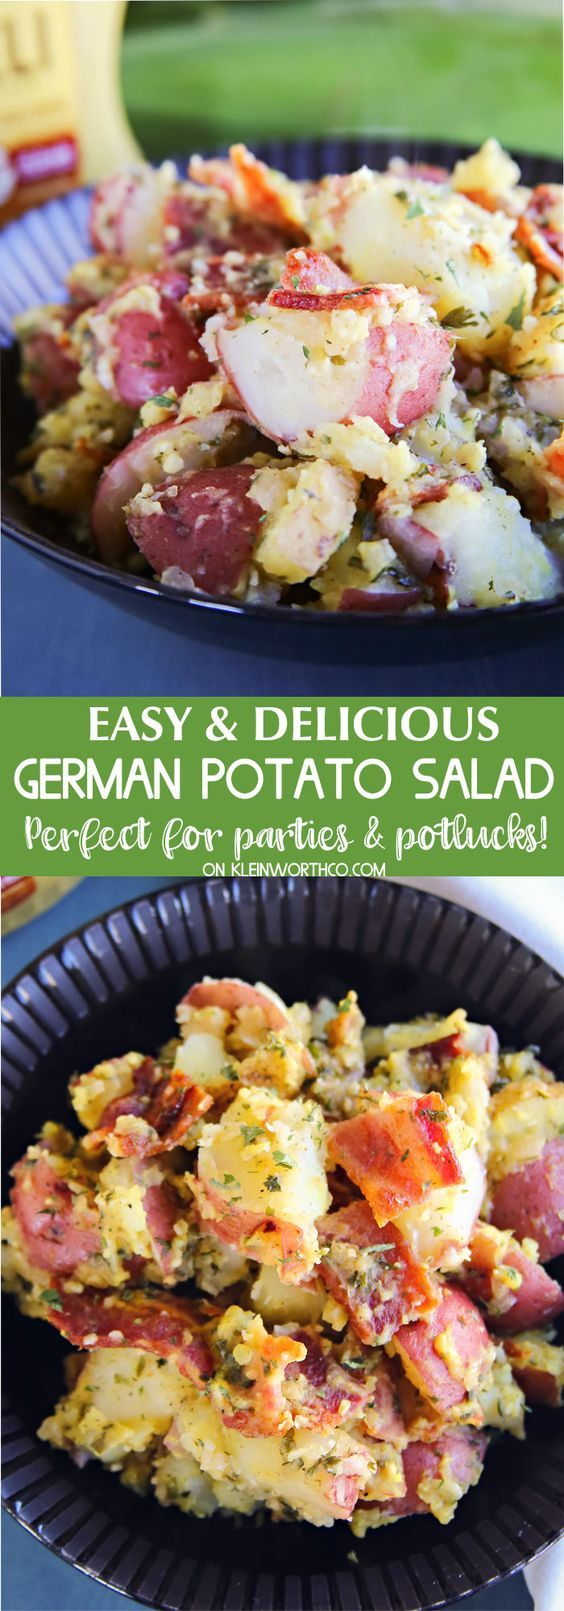 German Potato Salad ~ the perfect pairing with every BBQ favorite...spicy, tangy & delicious, this is THE recipe to bring to all of your summer parties and potlucks!